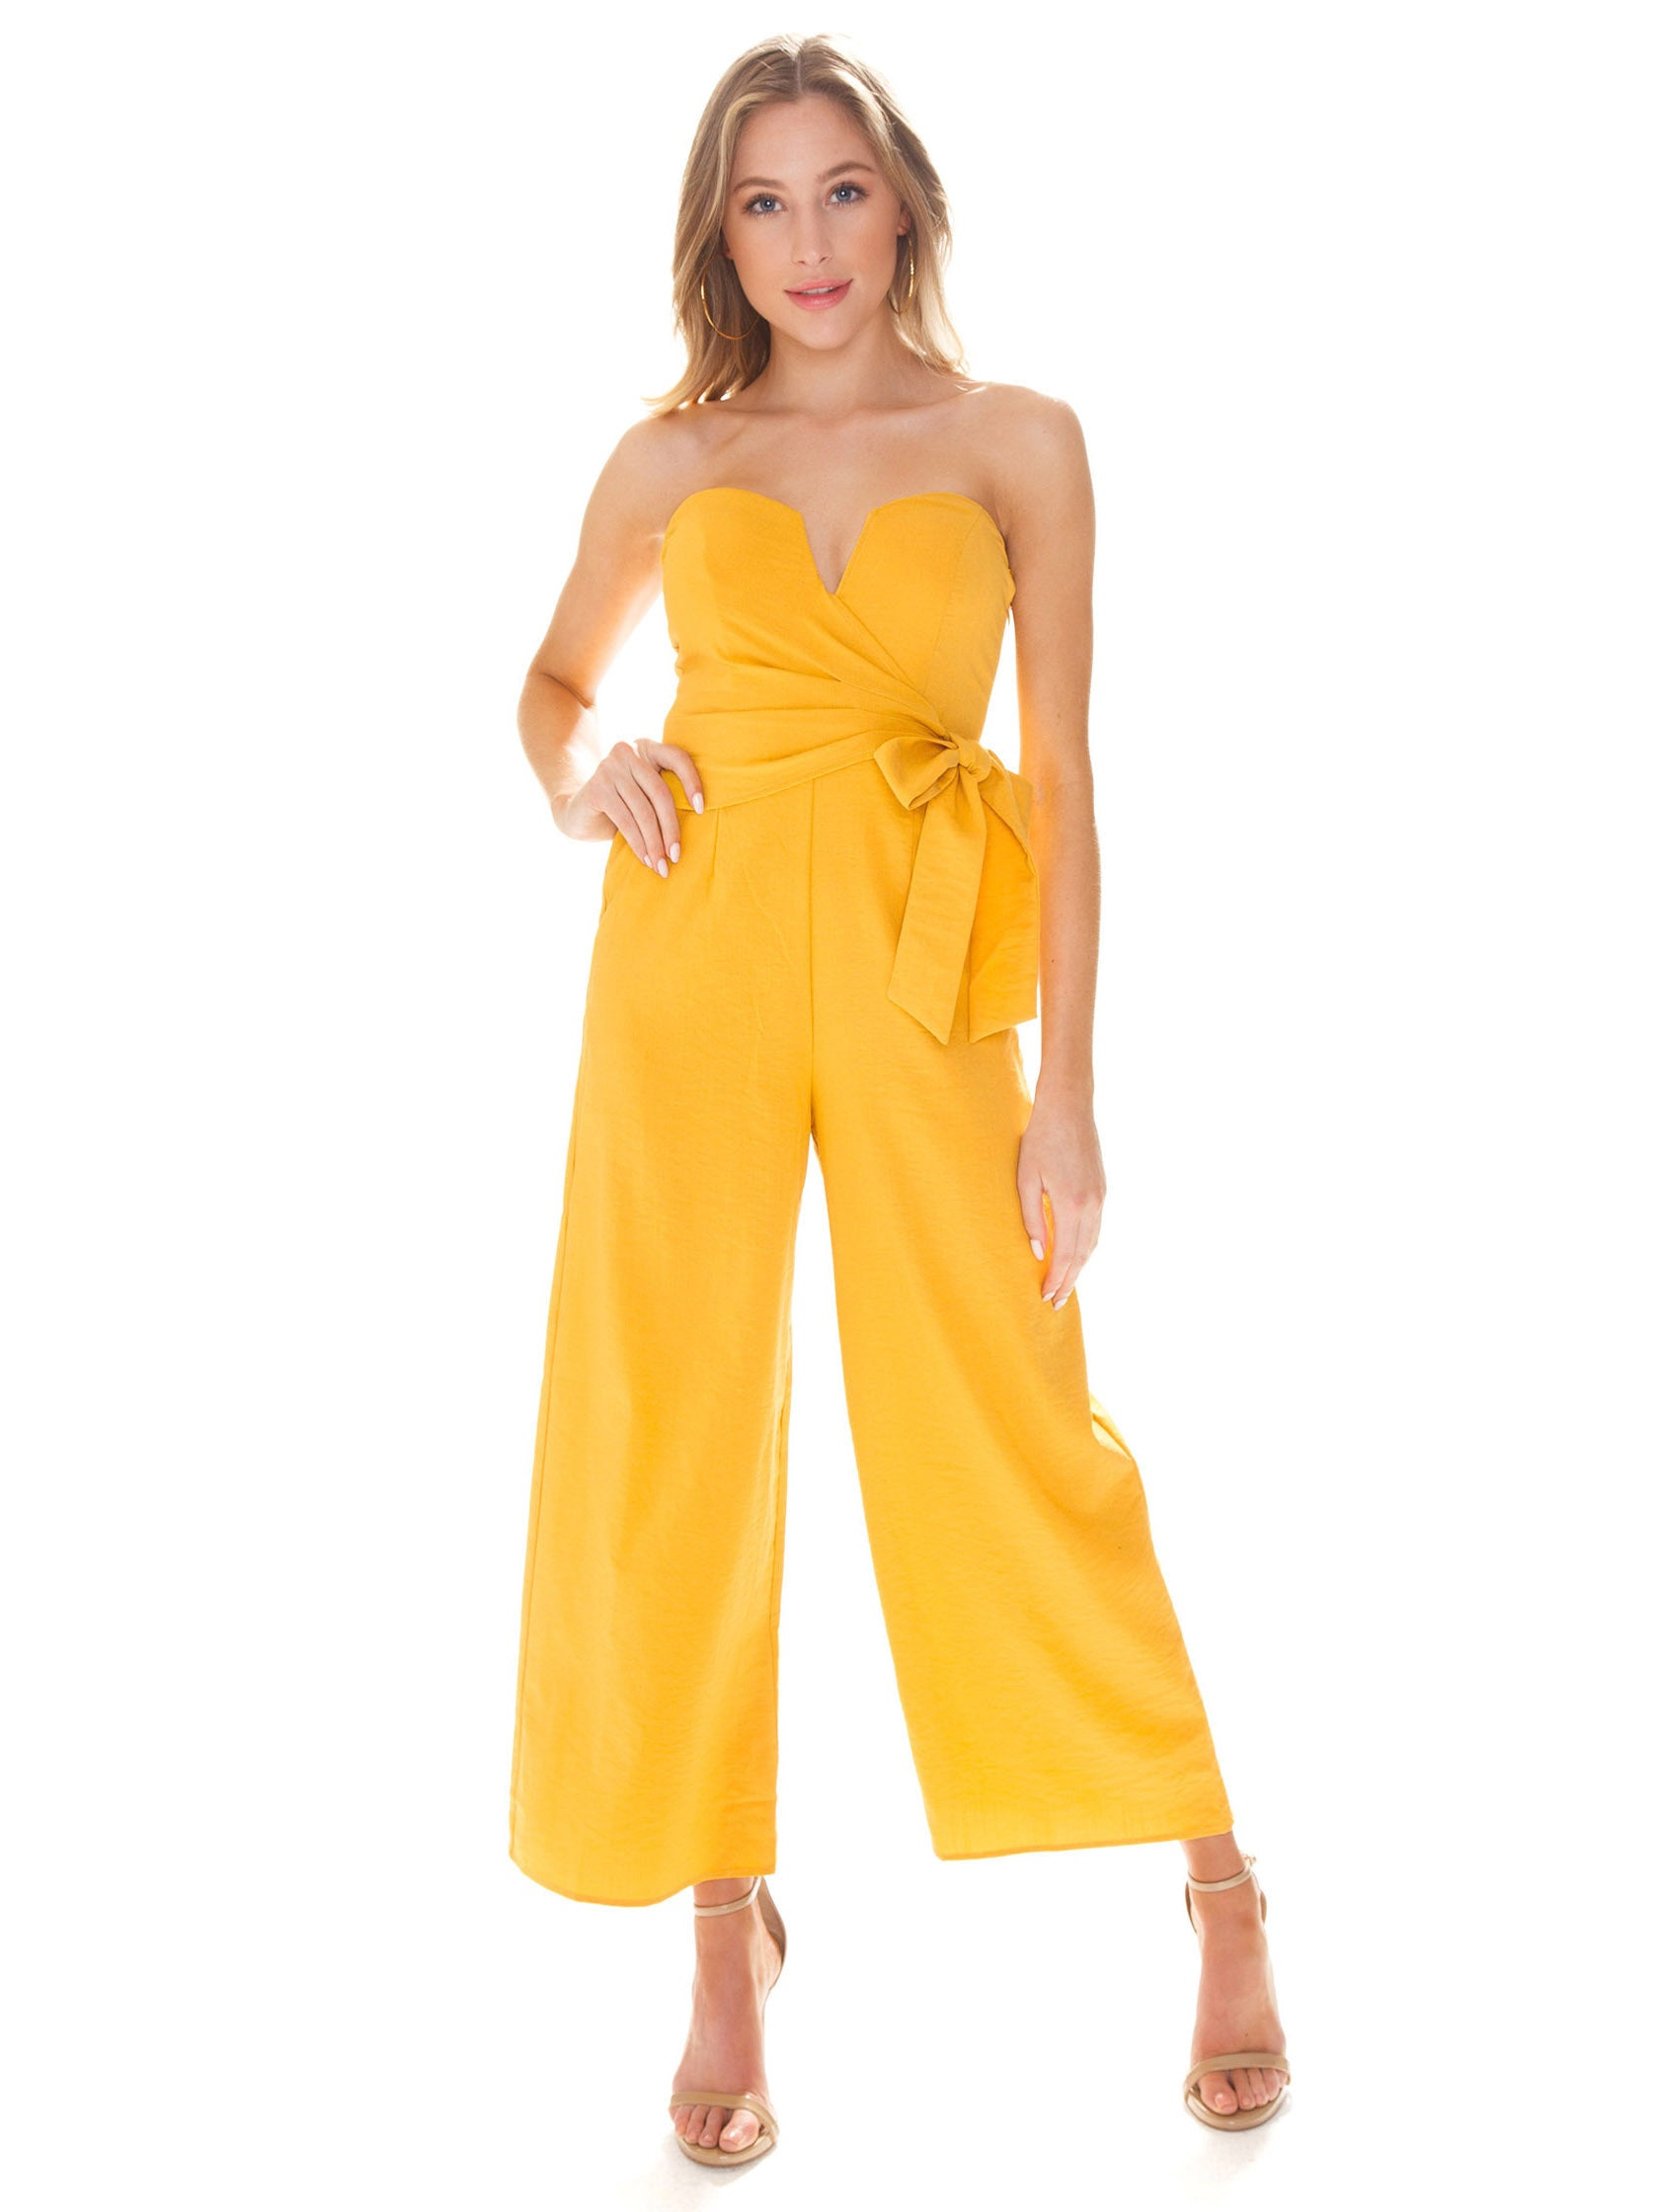 Women outfit in a jumpsuit rental from ASTR called Zion Jumpsuit